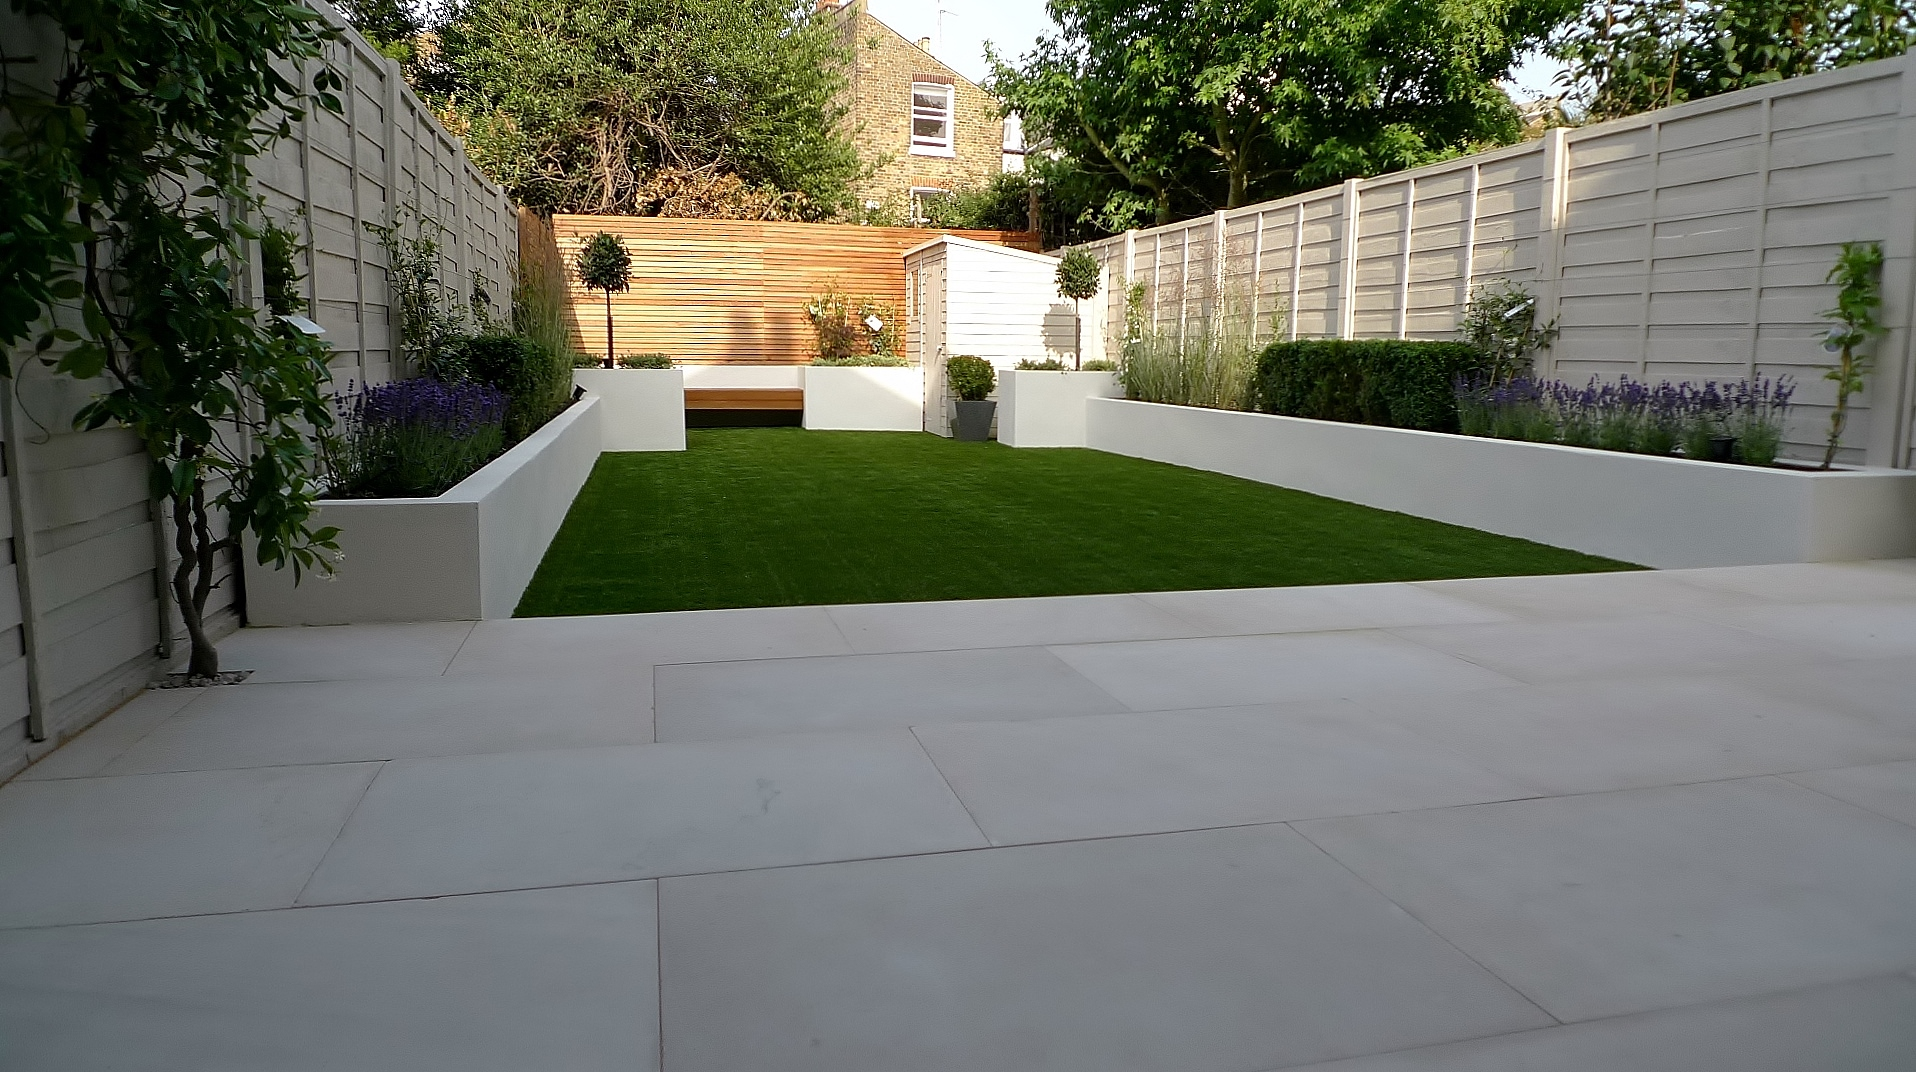 Anewgarden london garden blog for Tiny garden design ideas